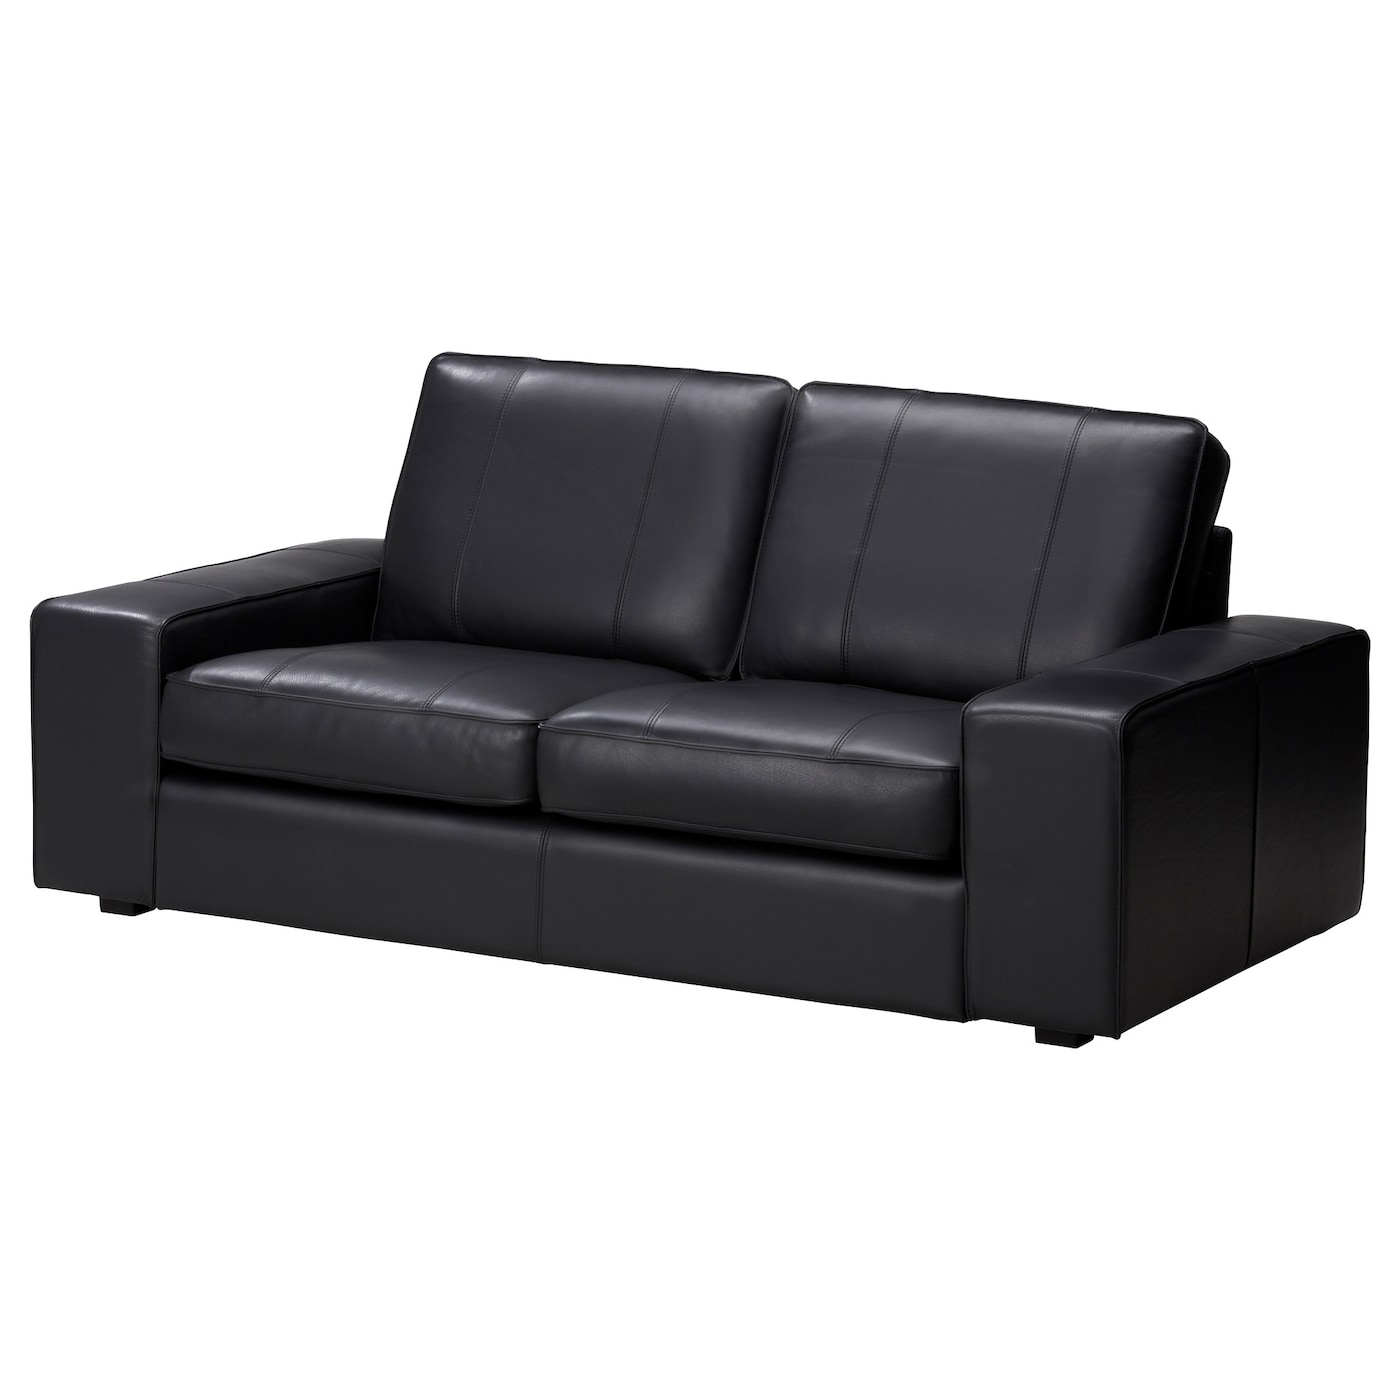 Bon IKEA KIVIK Two Seat Sofa 10 Year Guarantee. Read About The Terms In The